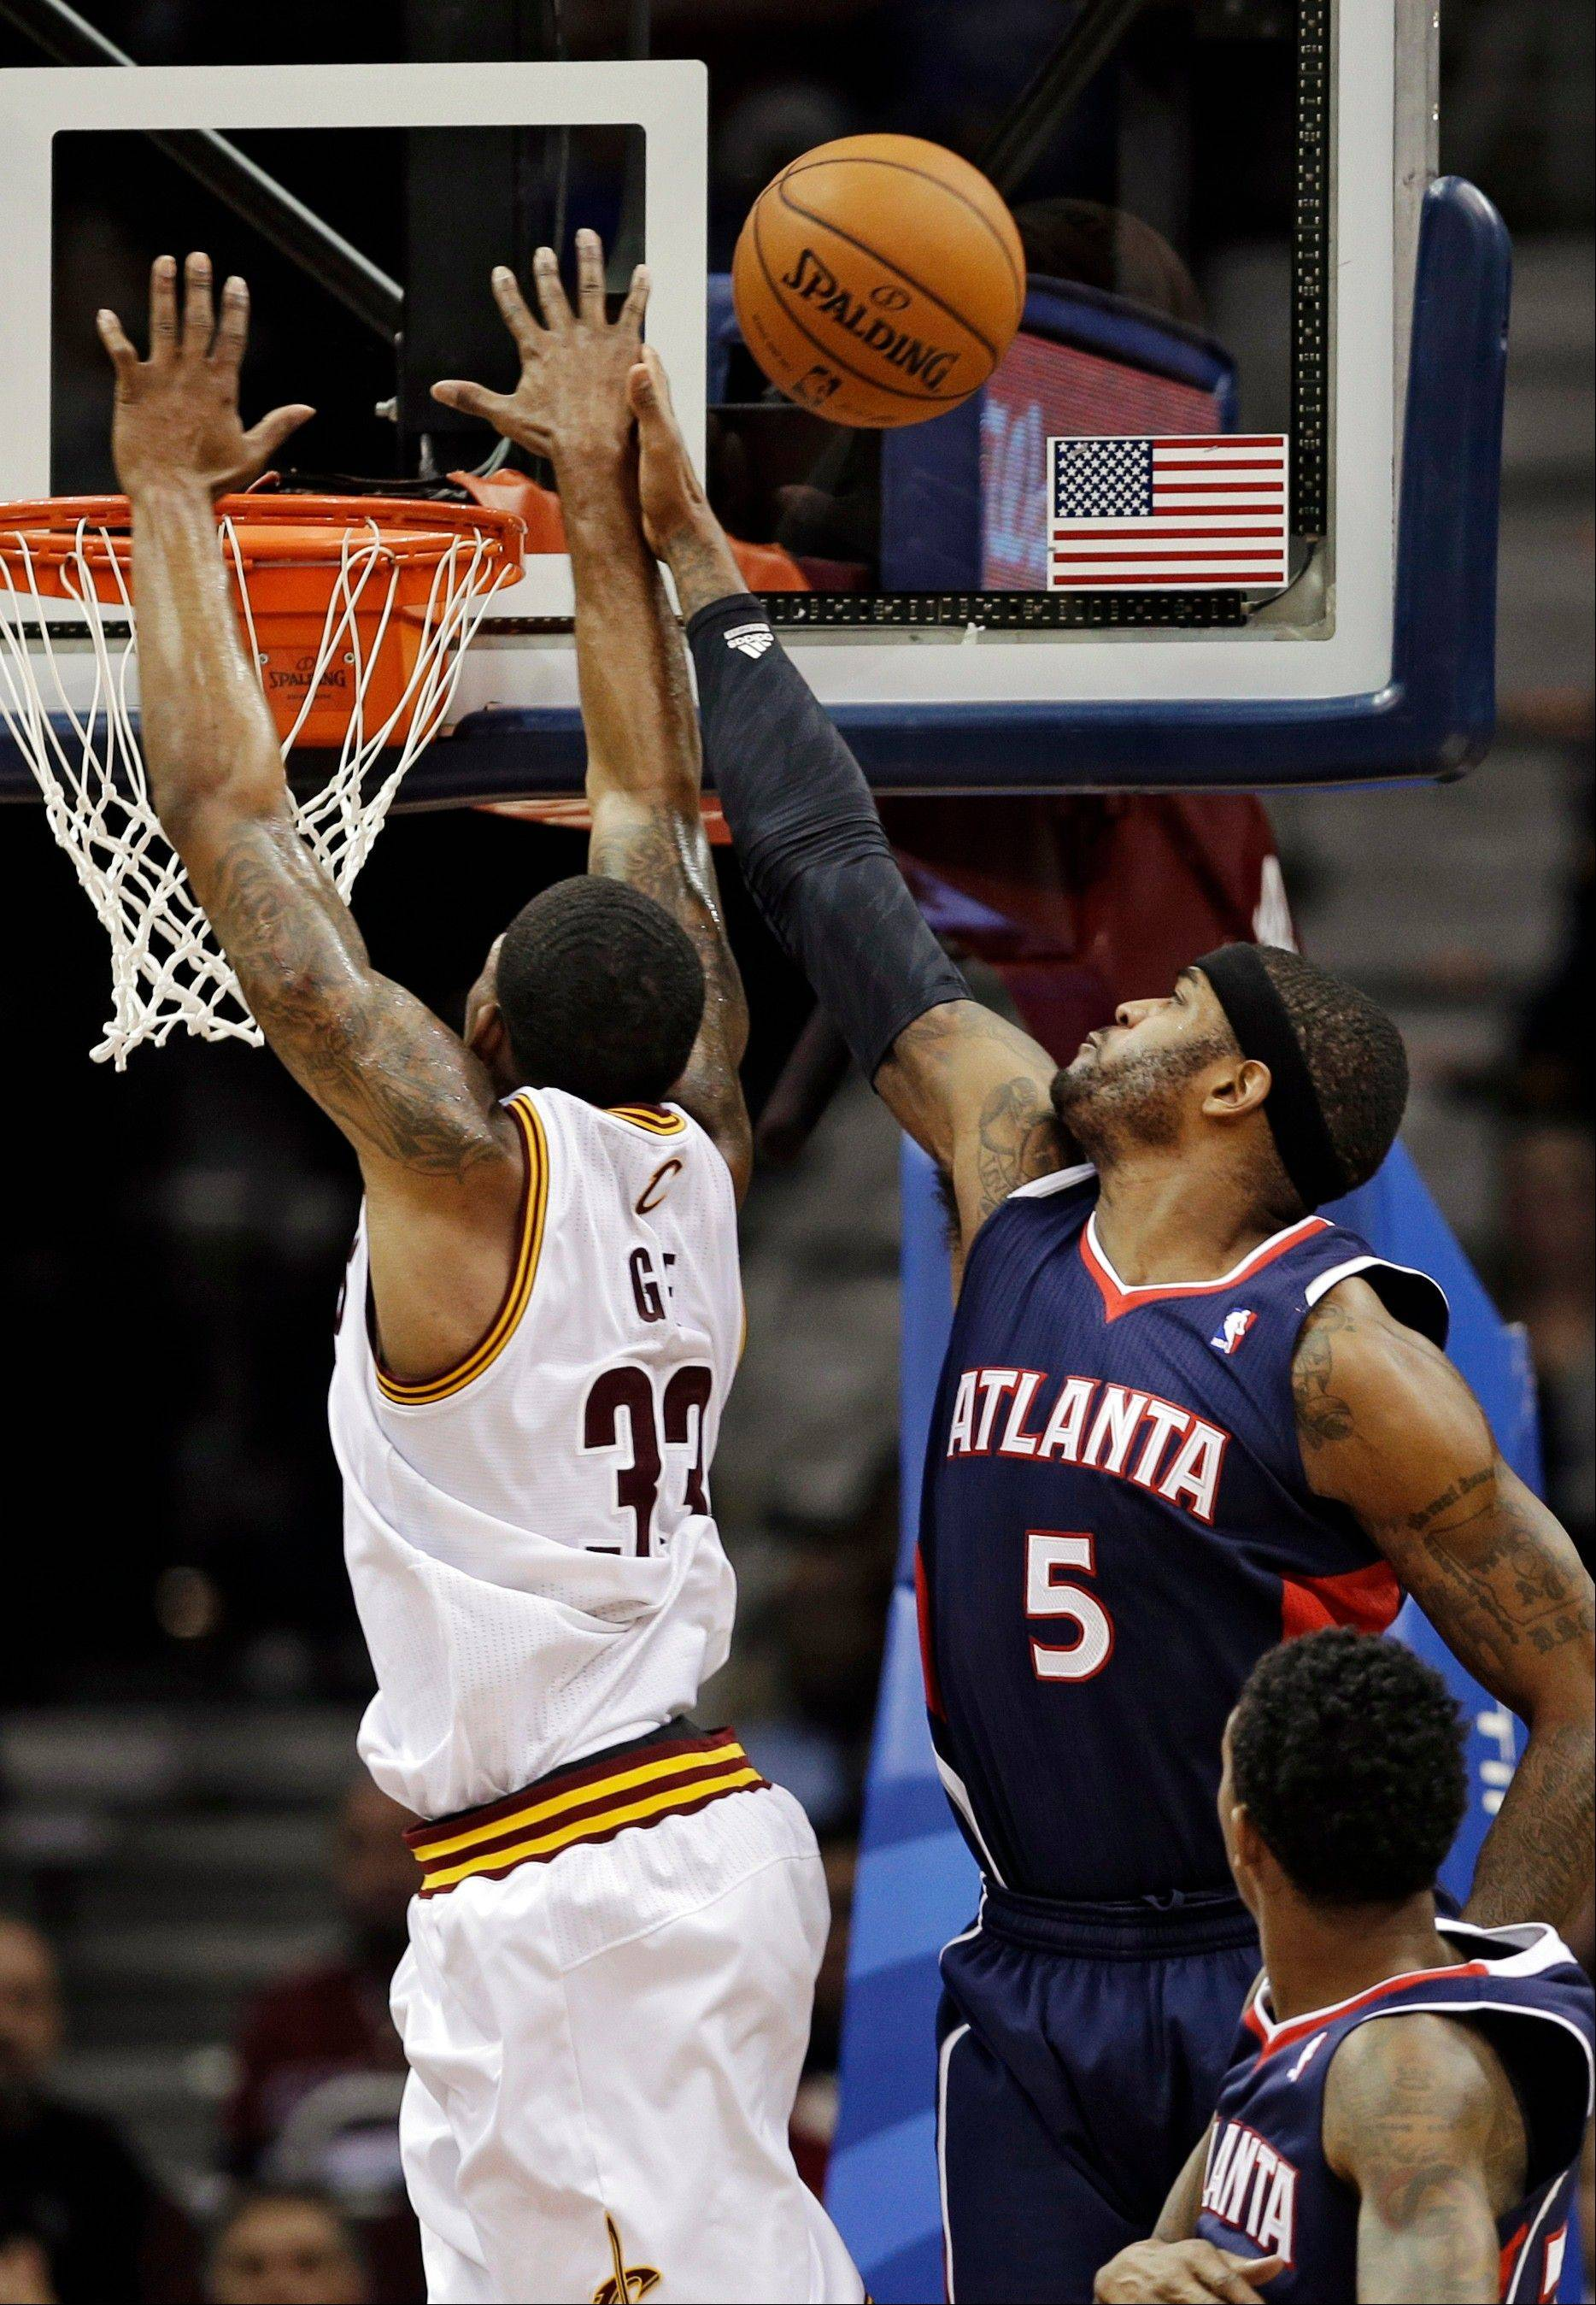 Atlanta Hawks� Josh Smith (5) blocks a shot by Cleveland Cavaliers� Alonzo Gee (33) in the third quarter of an NBA basketball game Wednesday in Cleveland. Smith led the Hawks with 17 points in a 99-83 loss to the Cavaliers.